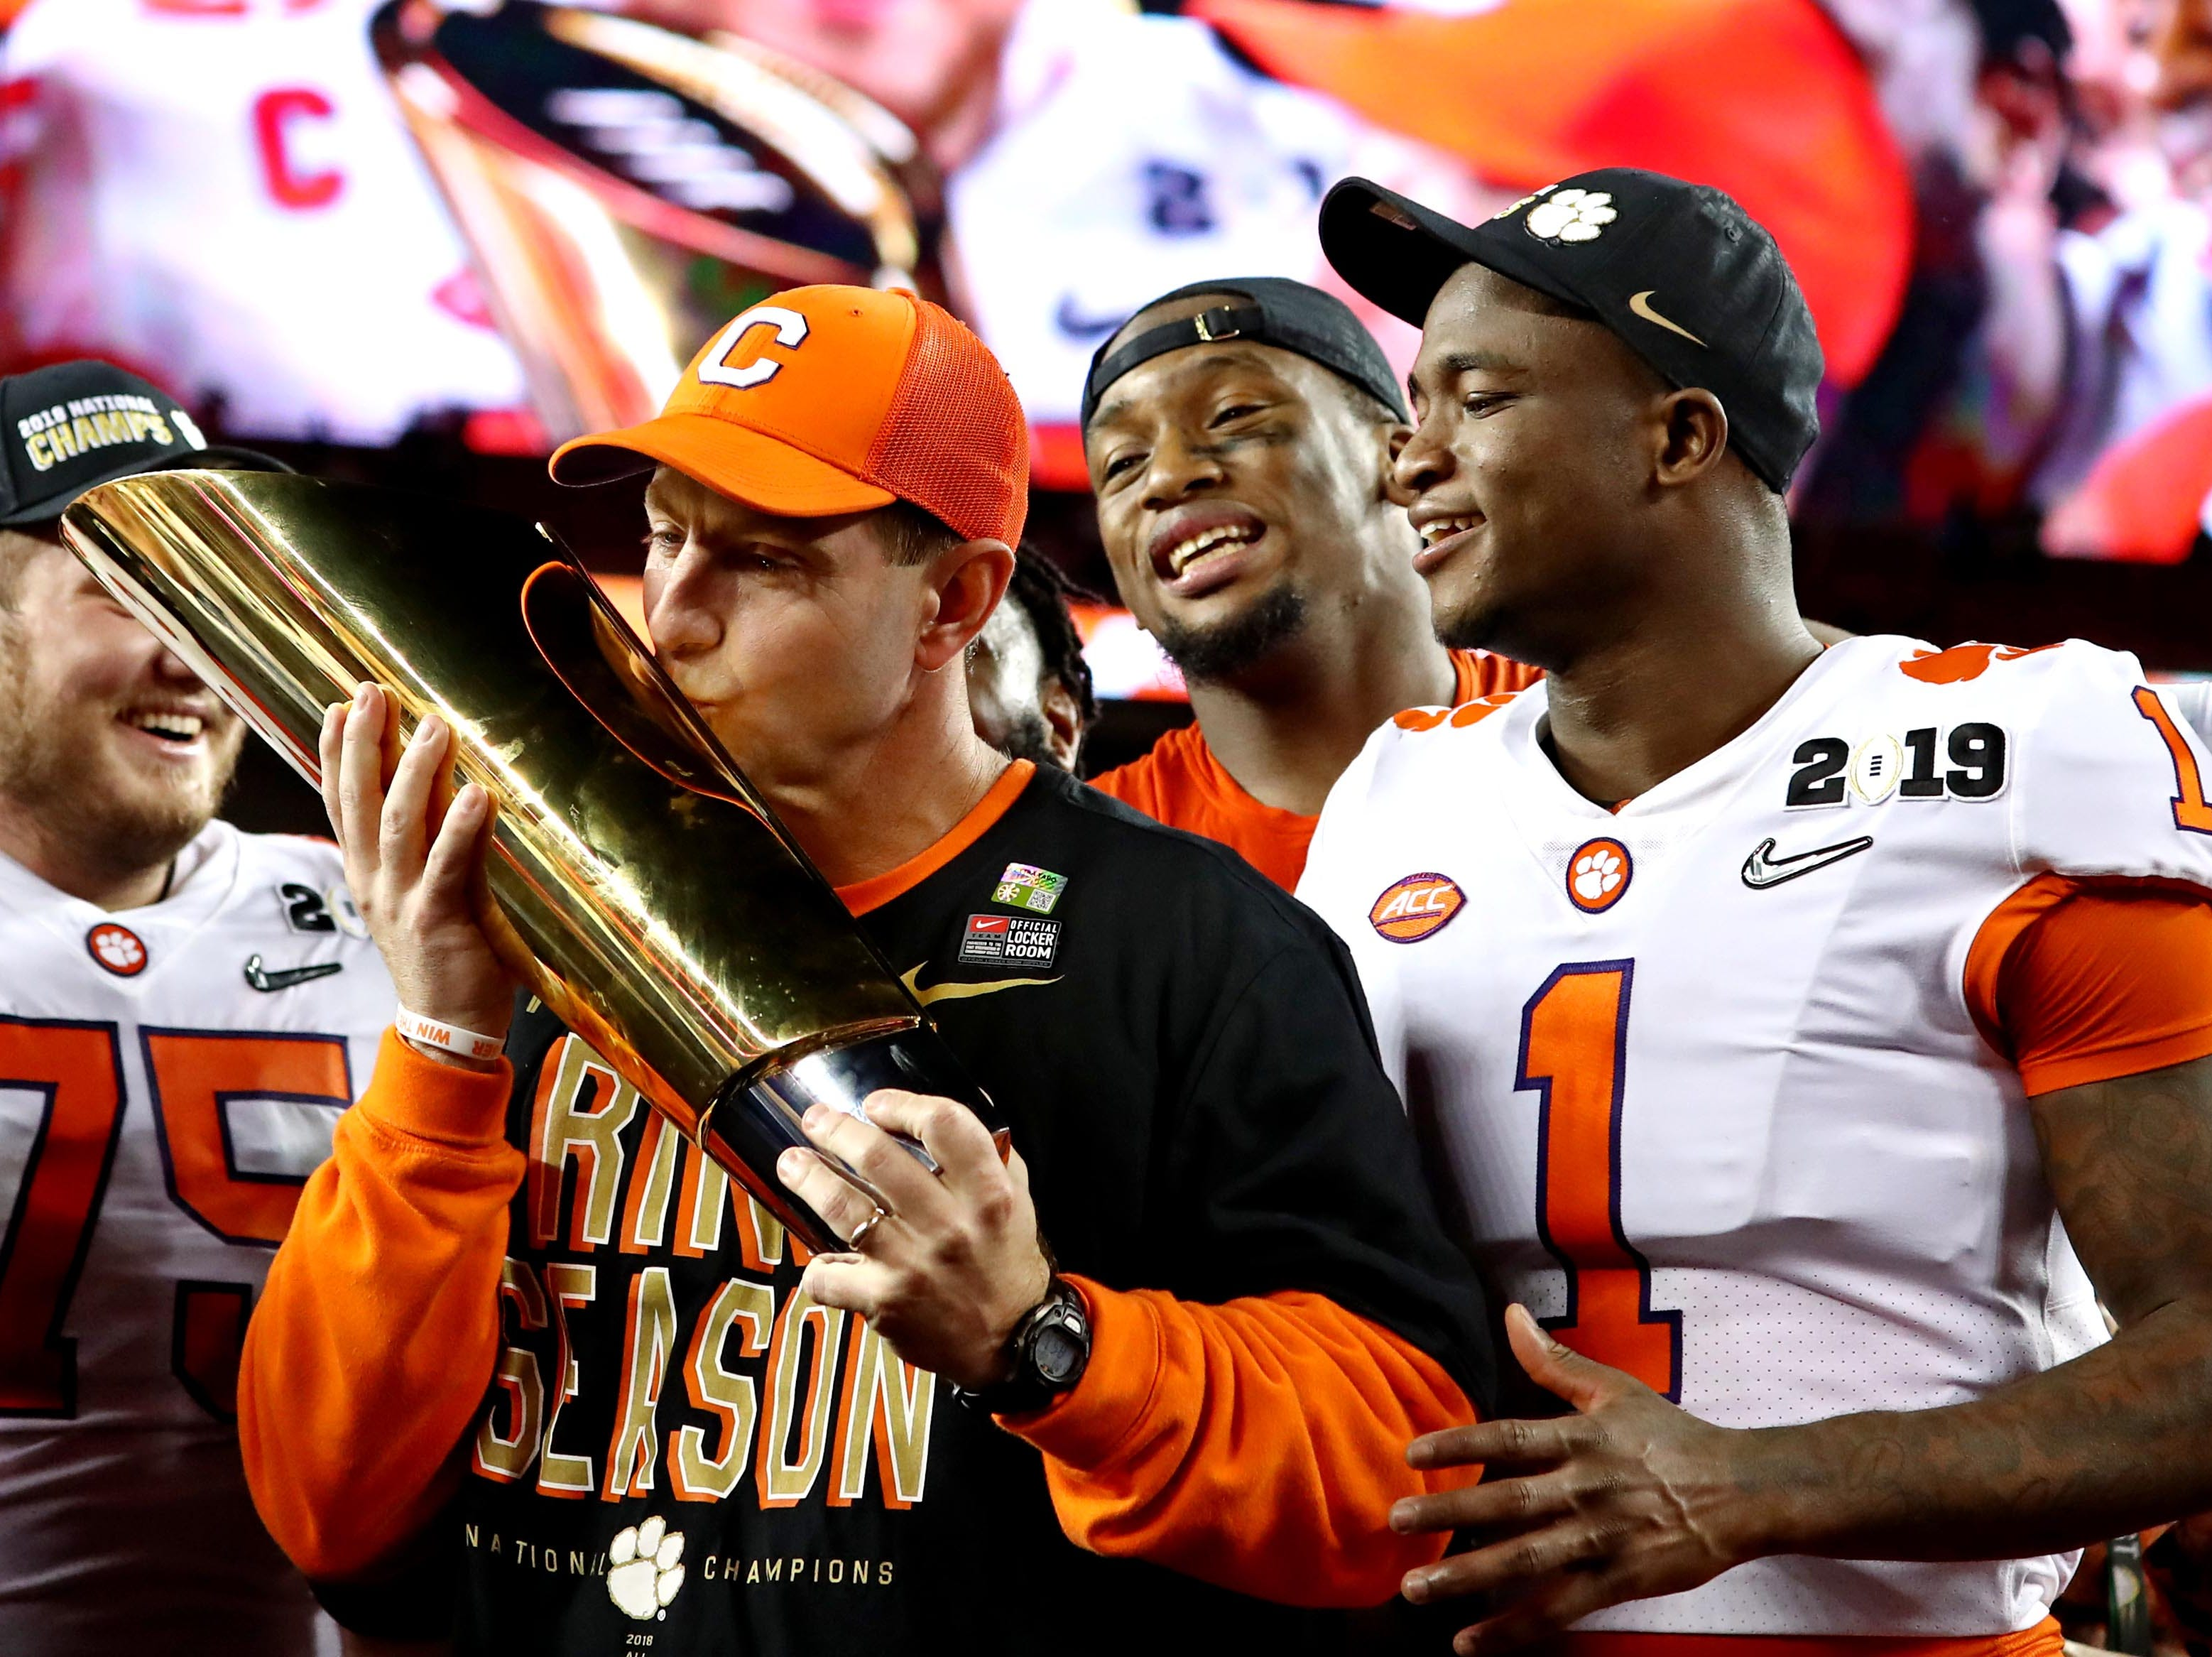 Clemson Tigers head coach Dabo Swinney celebrates with the national championship trophy after beating the Alabama Crimson Tide.